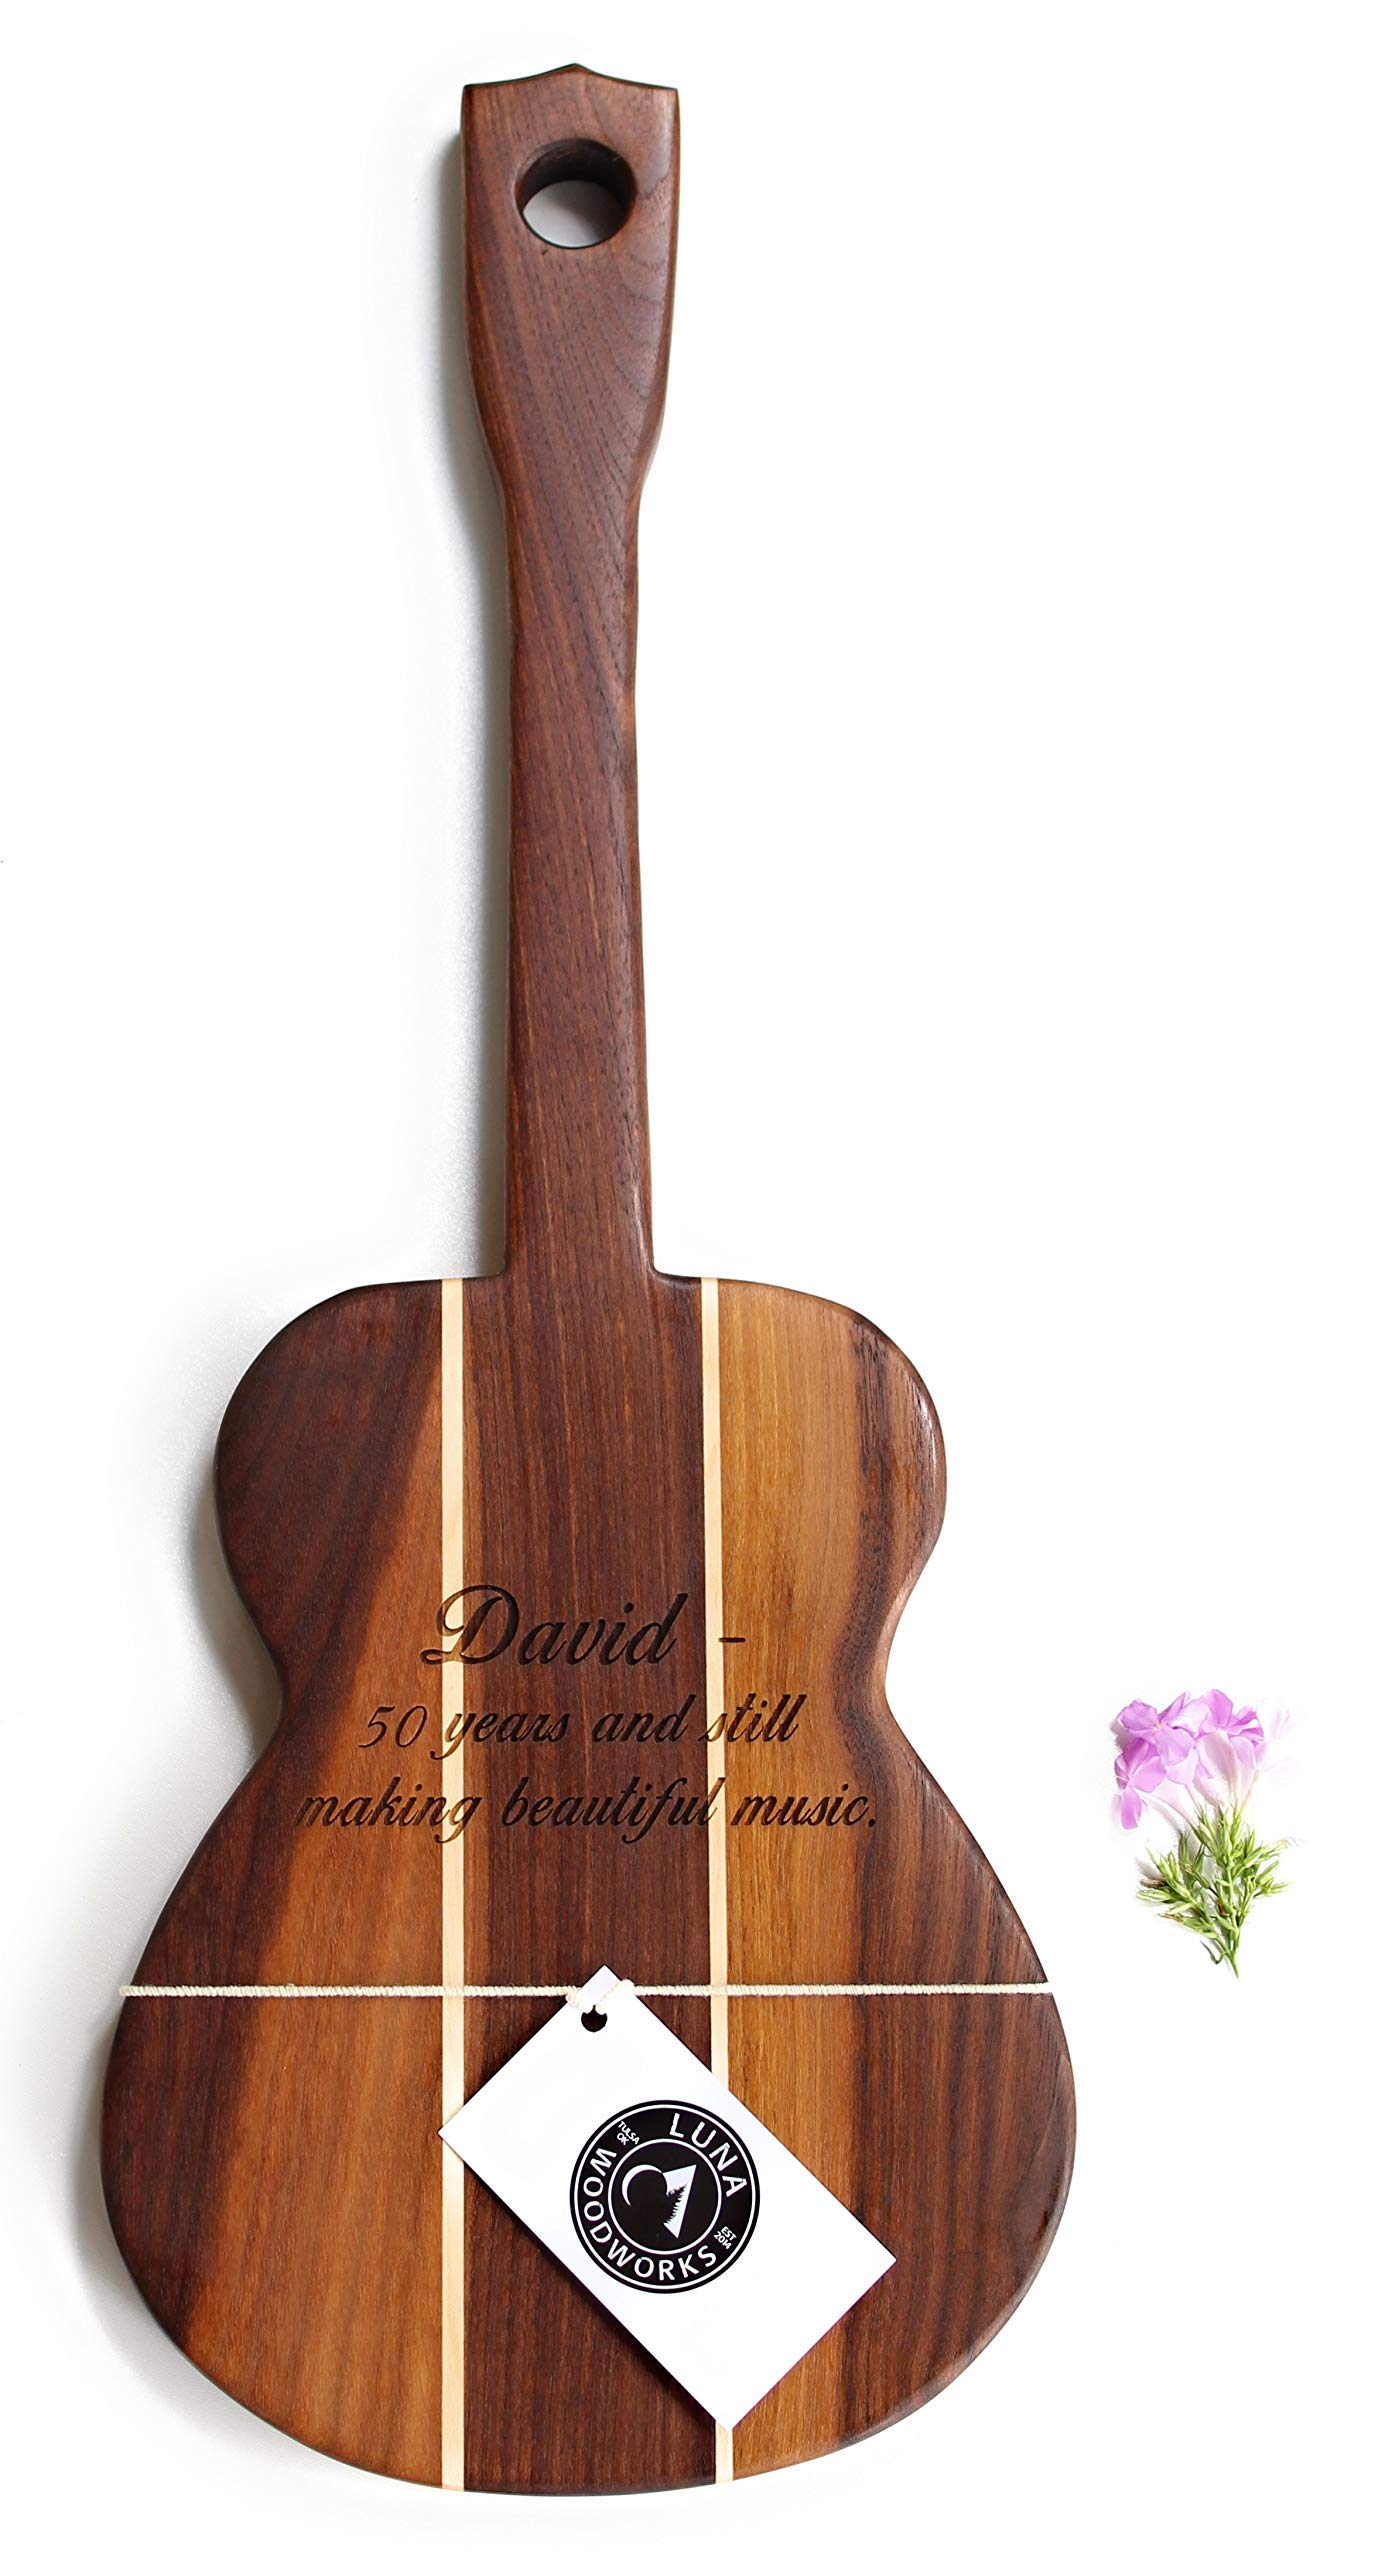 Ukulele Guitar Cutting Board Engraved Wood Wall Art Personalized Serving Tray Wedding Gift Anniversary Custom Wooden Sign Handmade in USA Kitchen Decor Musician Gift Guitar shaped Walnut